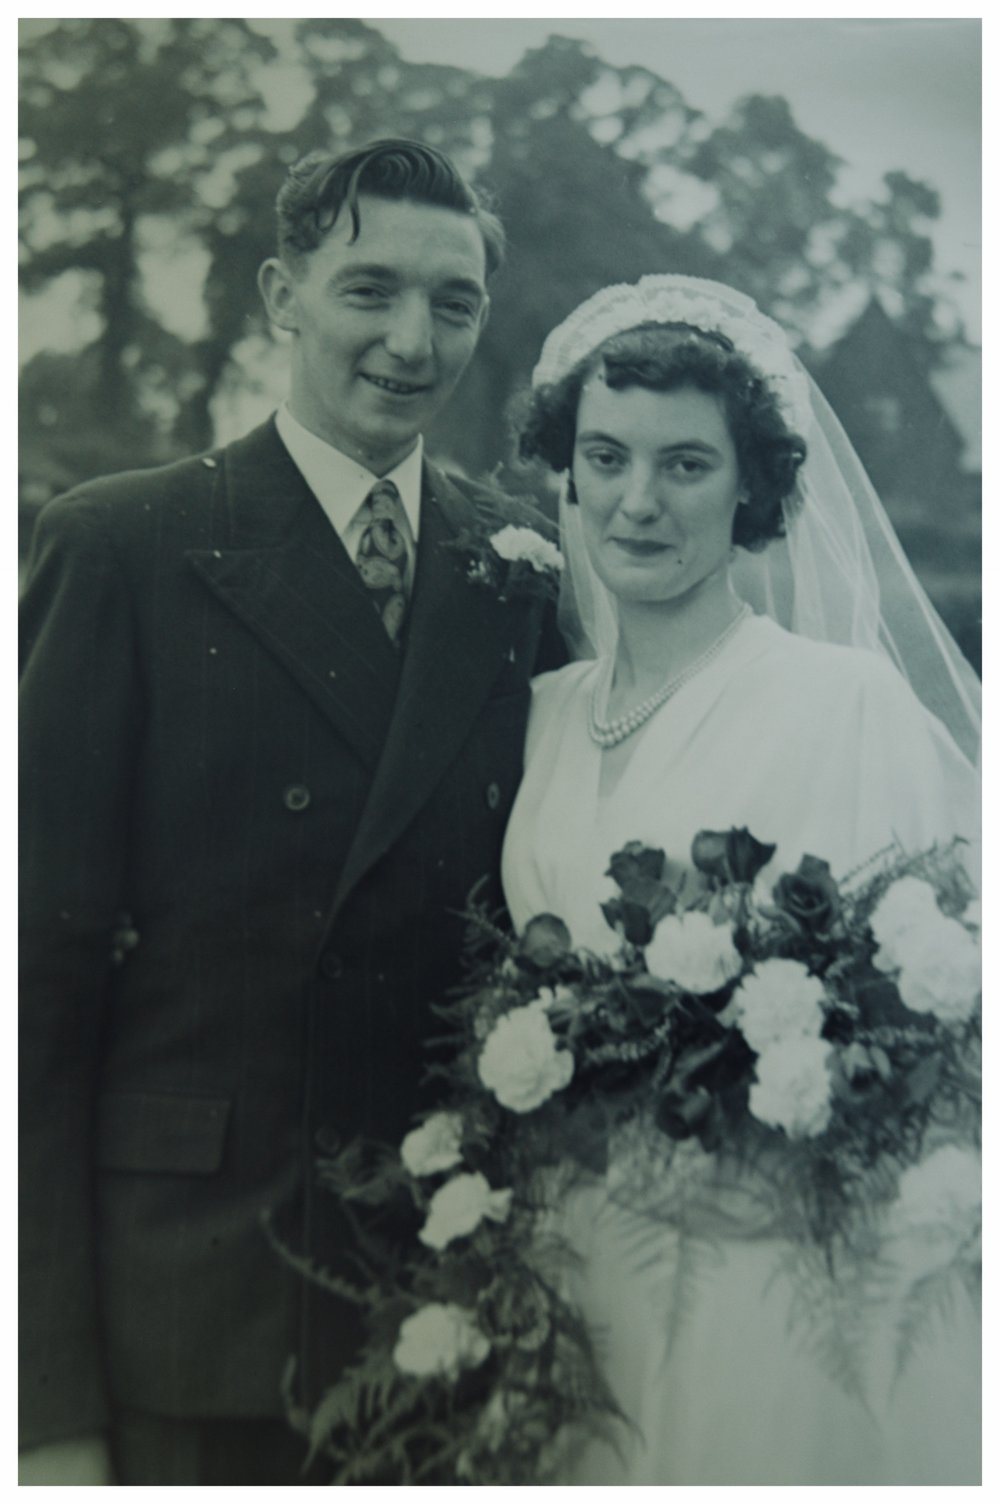 My grandparents on their wedding day, in Chorley, Lancashire, England